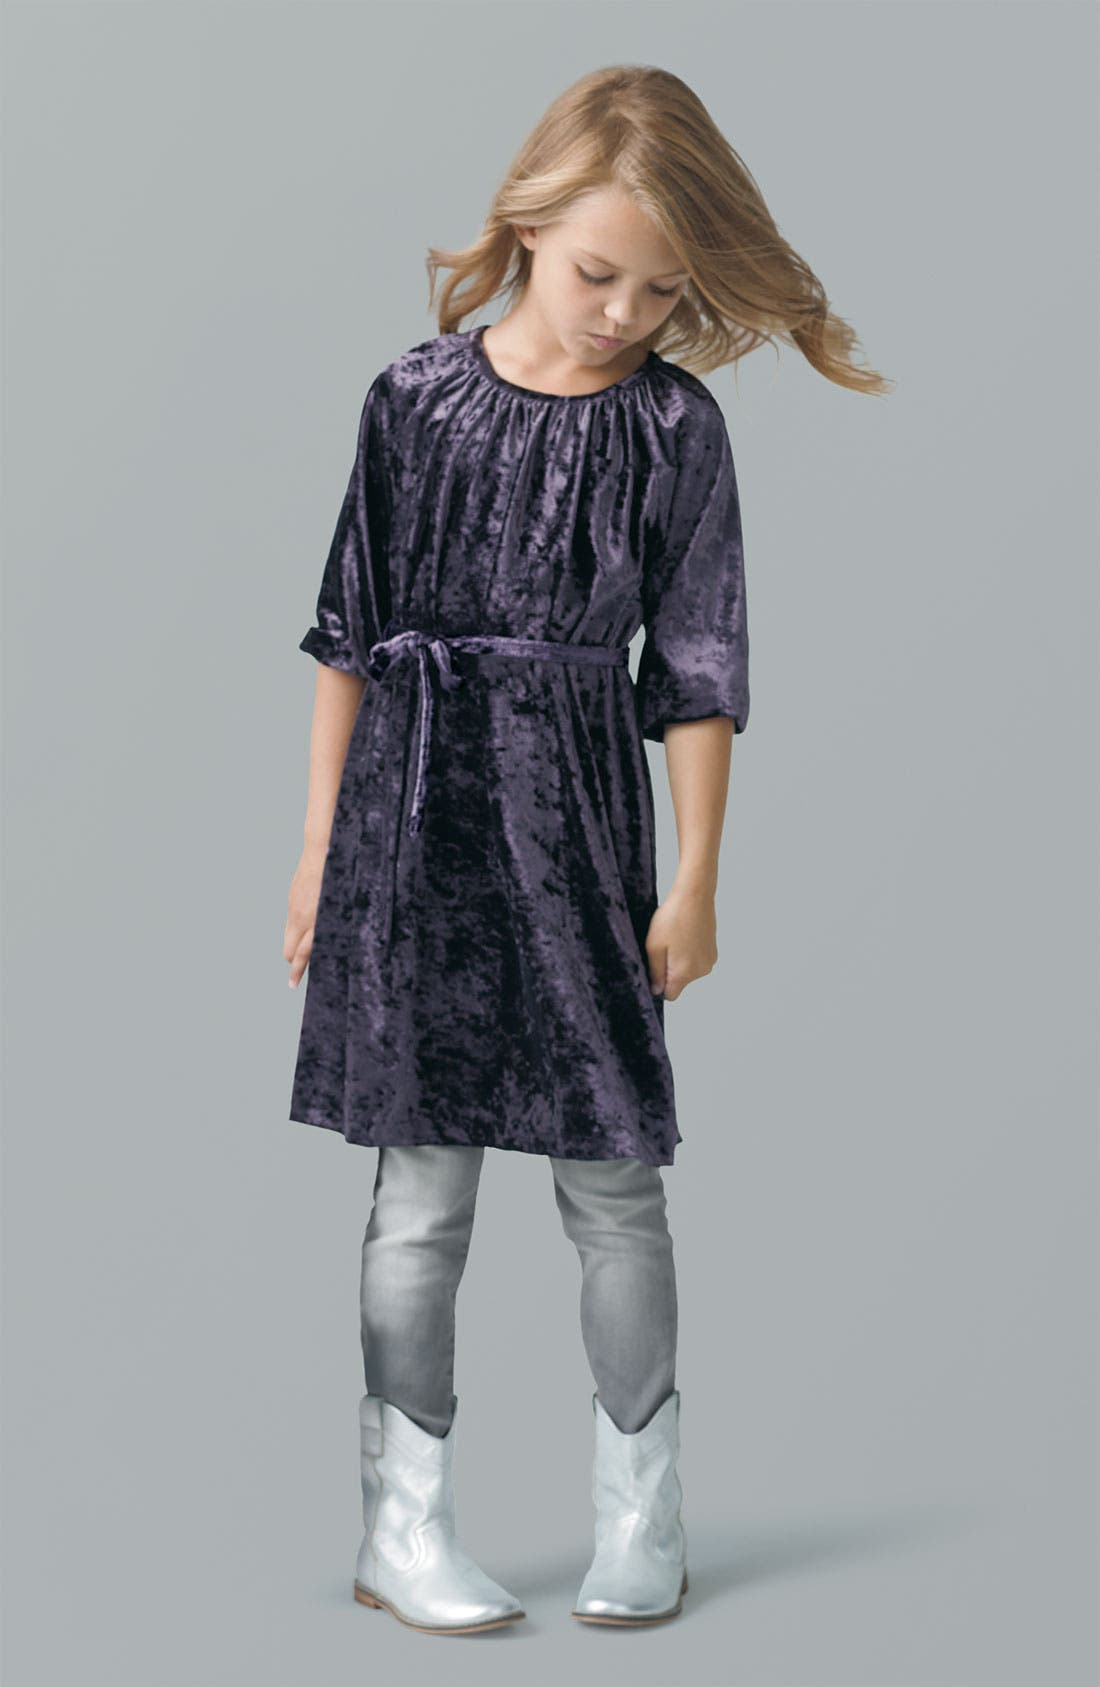 Alternate Image 1 Selected - Peek Dress & Jeans (Toddler, Little Girls & Big Girls)